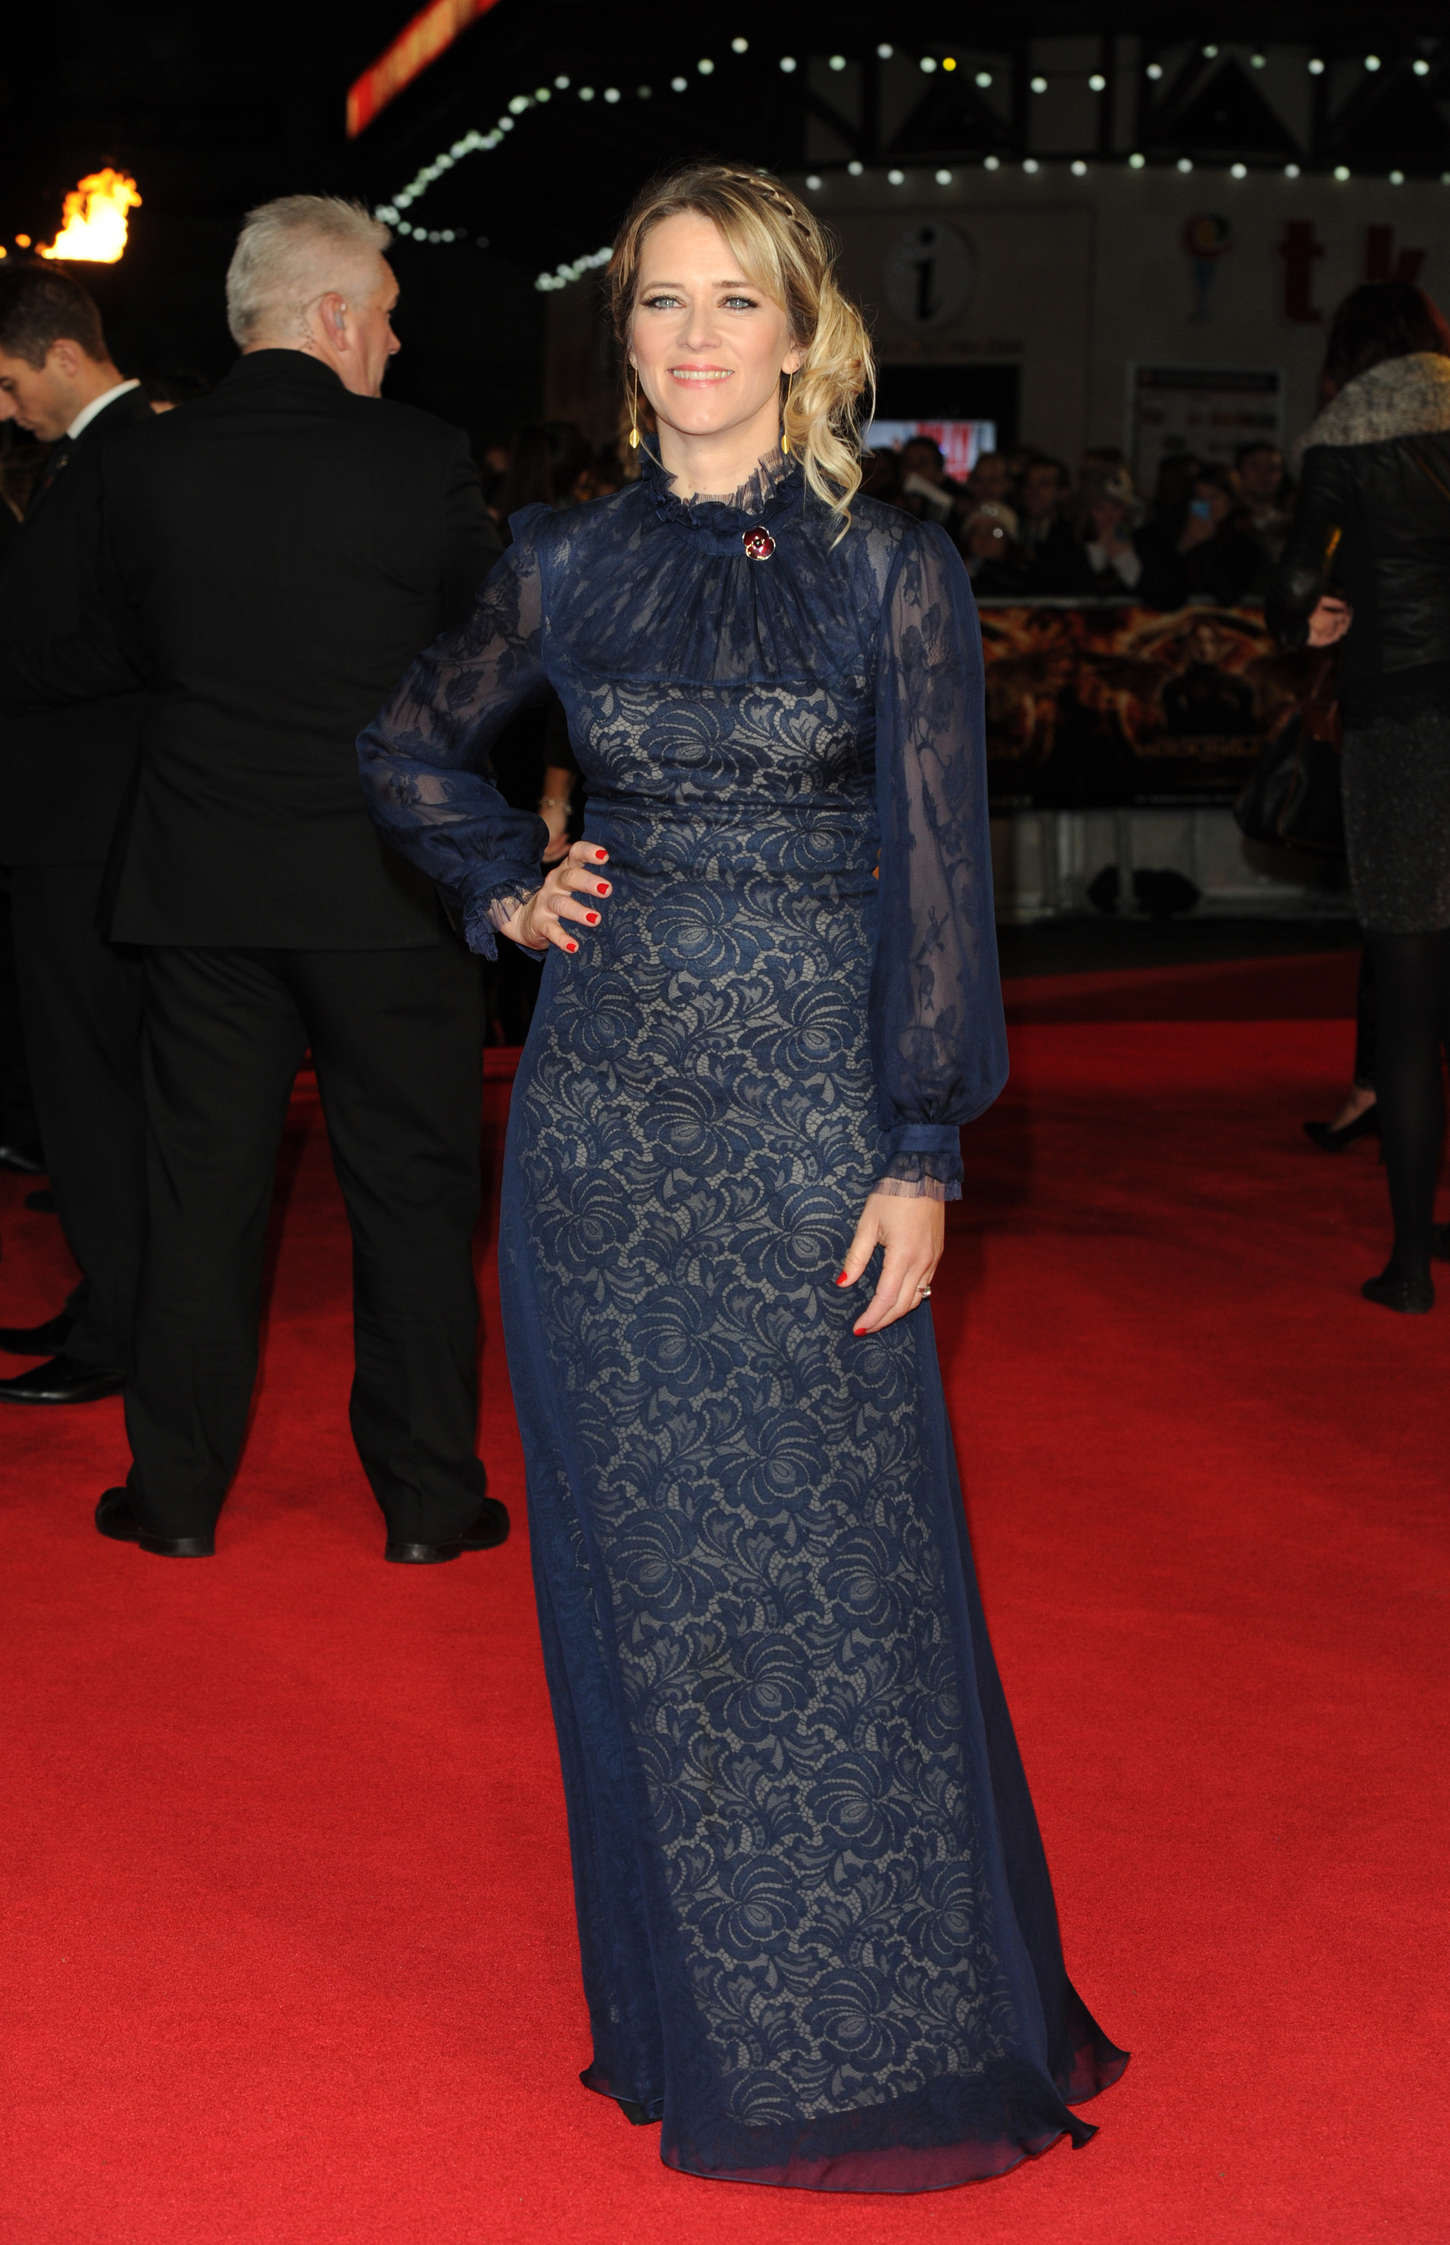 Edith Bowman at Premiere of The Hunger Games Mockingjay Part in London